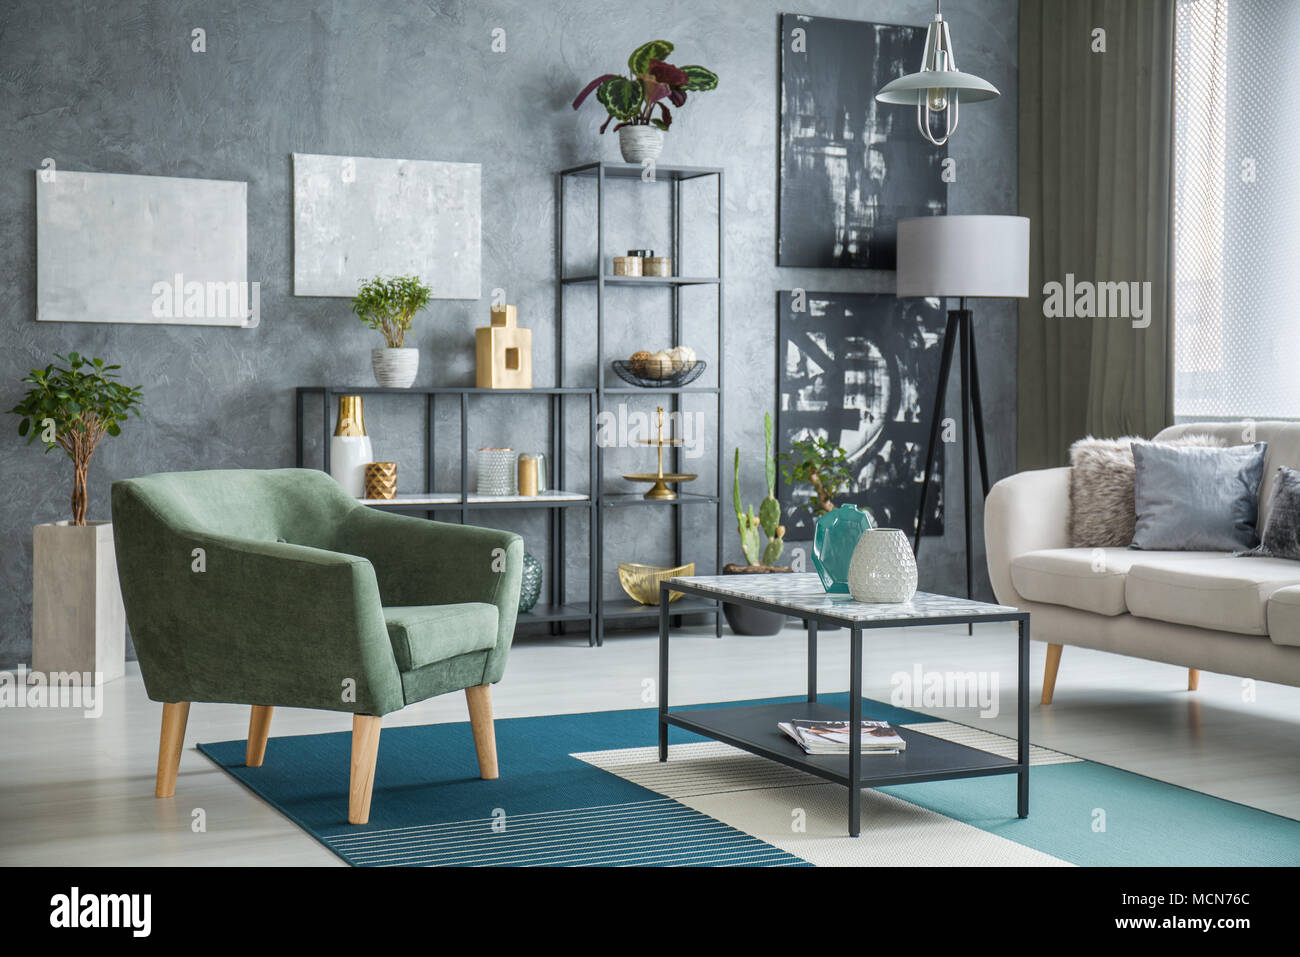 Green Armchair Standing Next To A Metal Table With Marble Pattern Placed In Industrial Living Room Interior With Plants And Decor Stock Photo Alamy